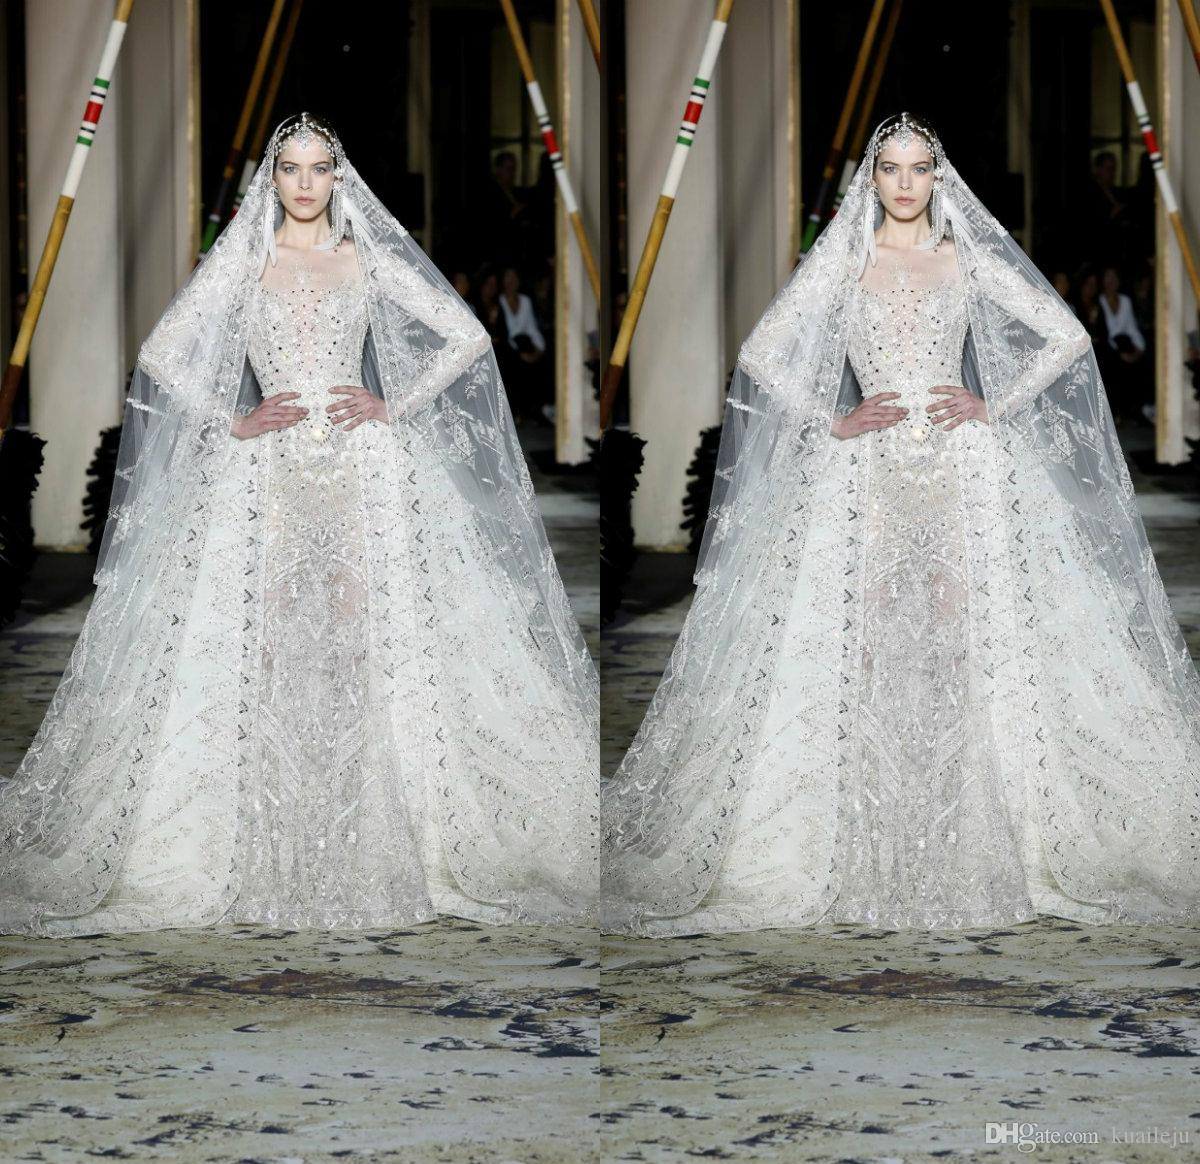 Bohemian Luxury Ball Gown Wedding Dresses Tulle Lace Crystal Beads Sequins Long Sleeve Princess Gown Floor Length Bridal Gowns Ball Gown Wedding Gown Wedding Dress From Kuaileju 278 59 Dhgate Com,Winter Wonderland Themed Wedding Dresses